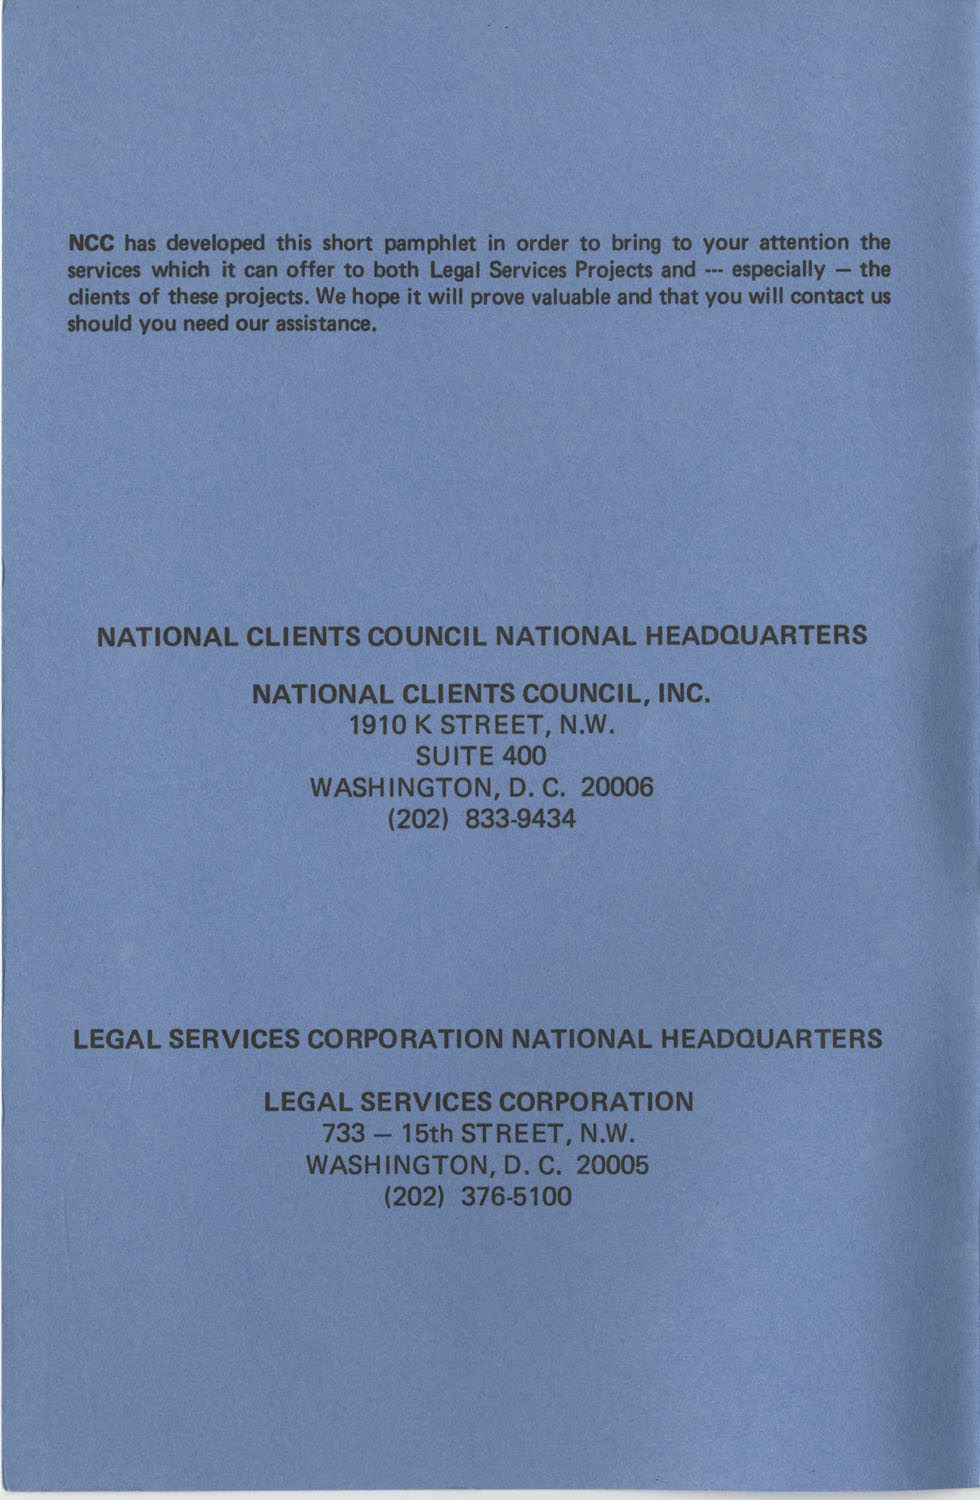 The Why's and How's of The National Clients Council, Front Cover Interior